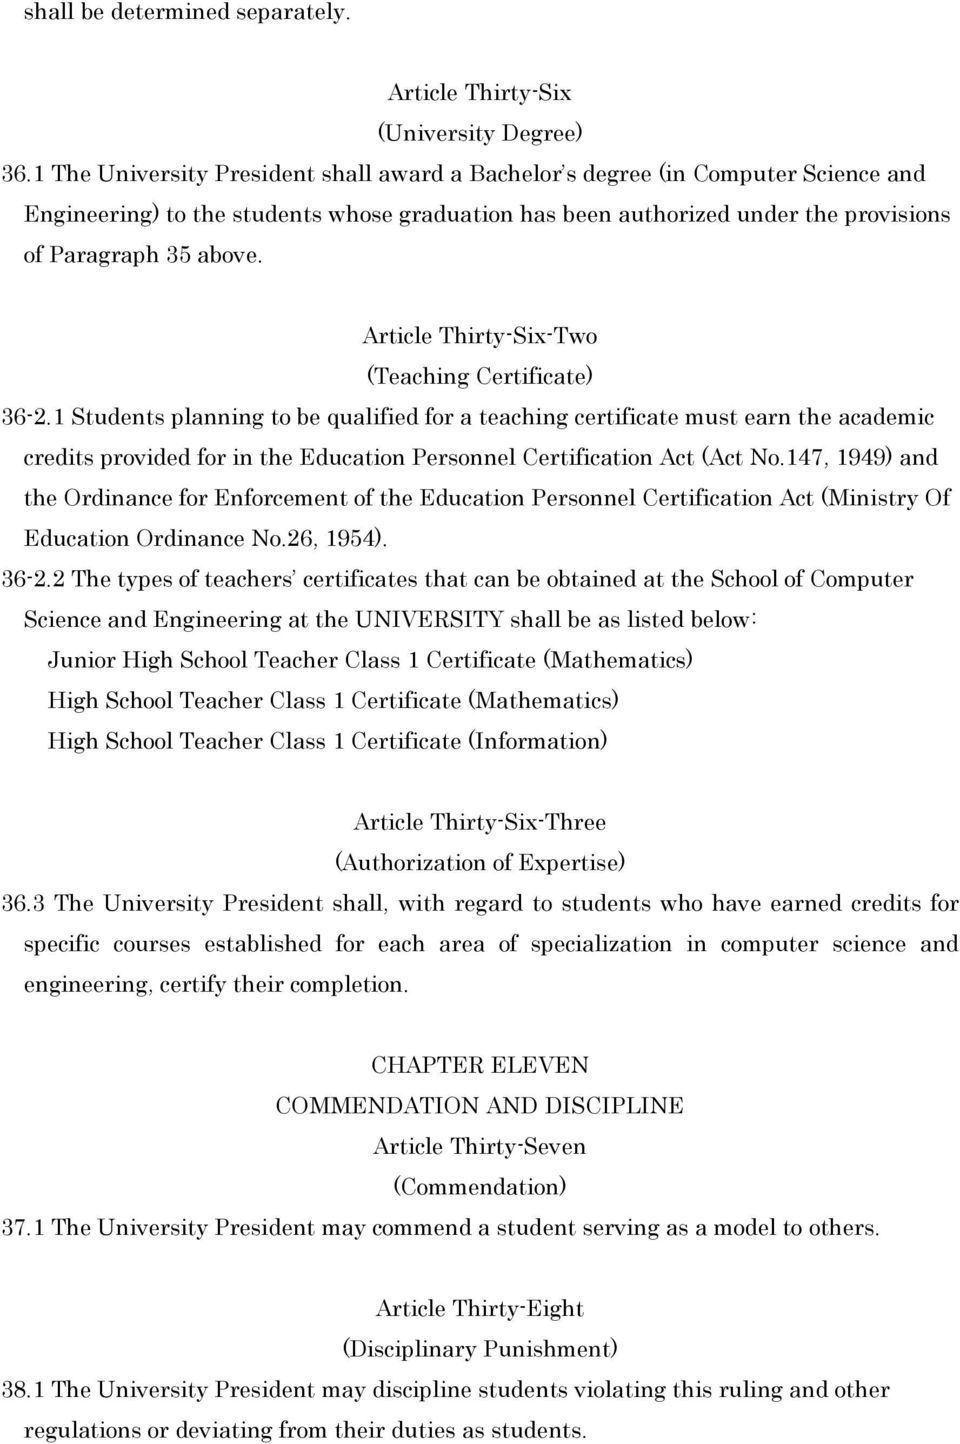 Article Thirty-Six-Two (Teaching Certificate) 36-2.